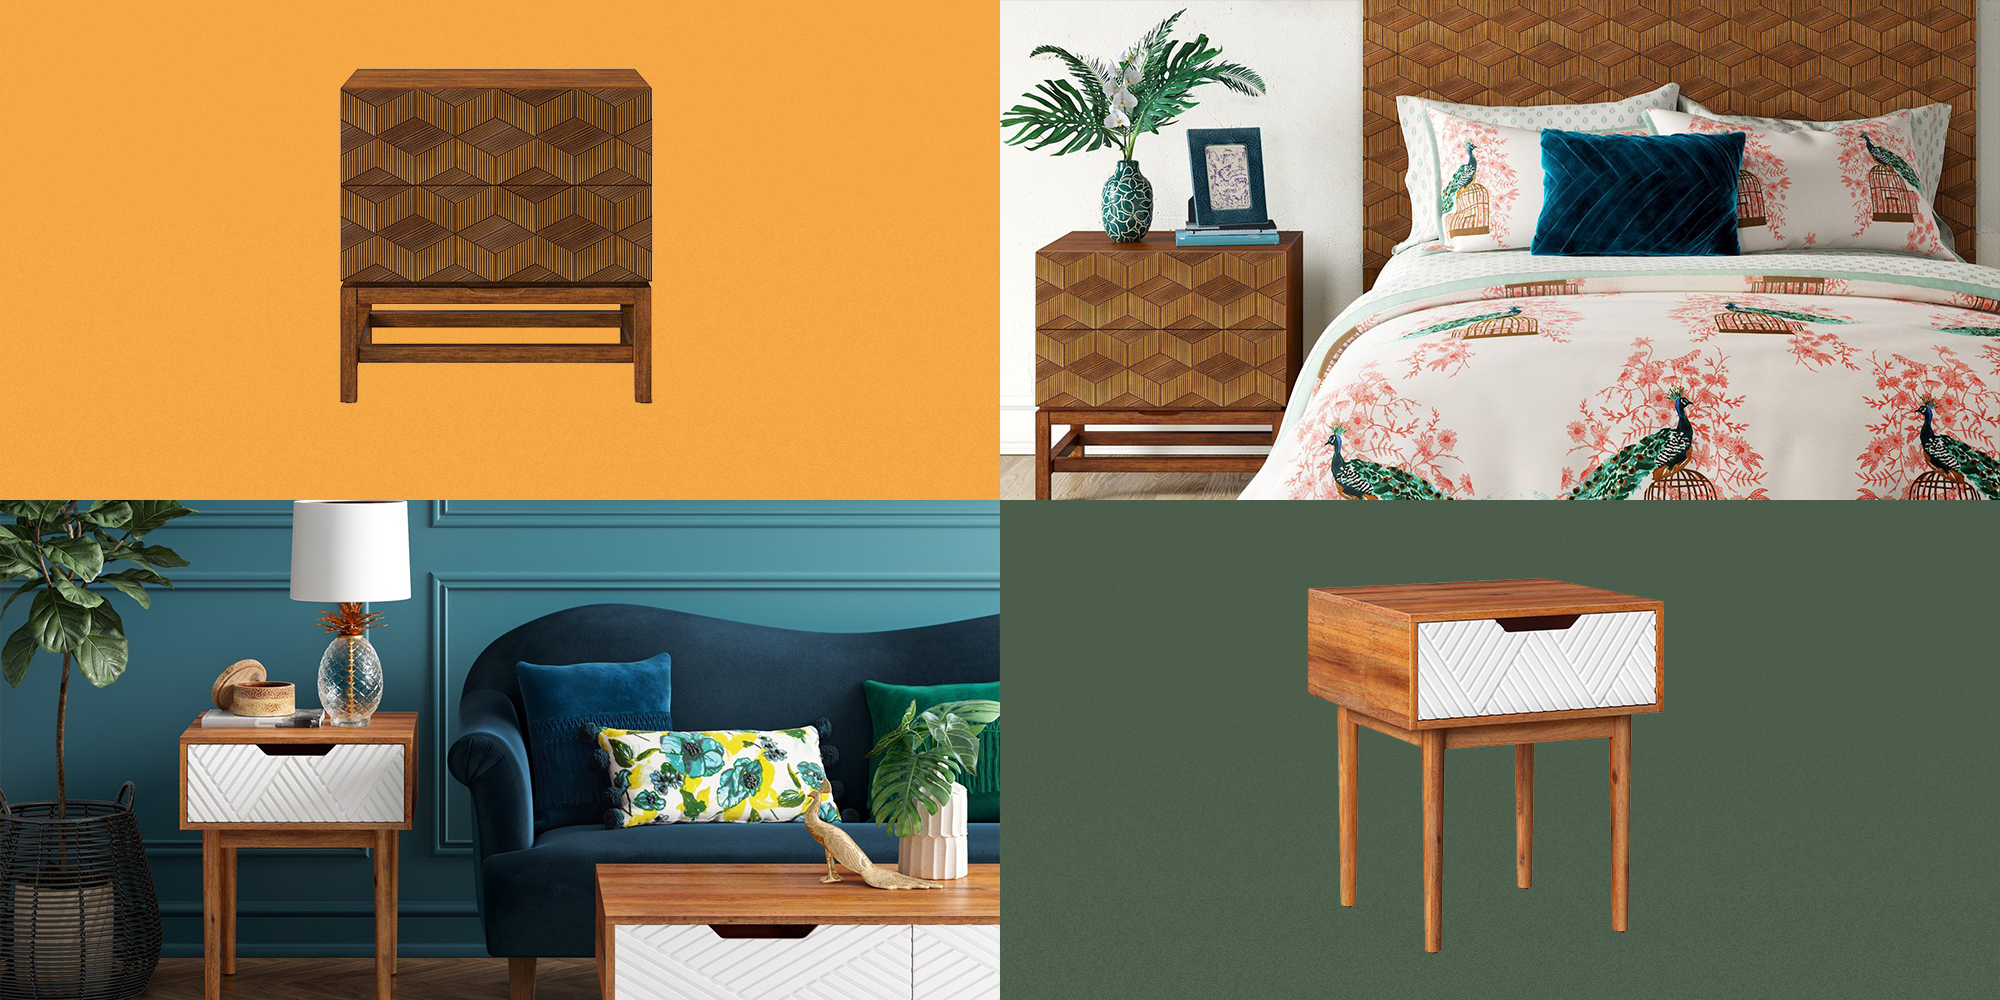 10 Actually Stylish Bedside Tables That Won't Keep You Up At Night